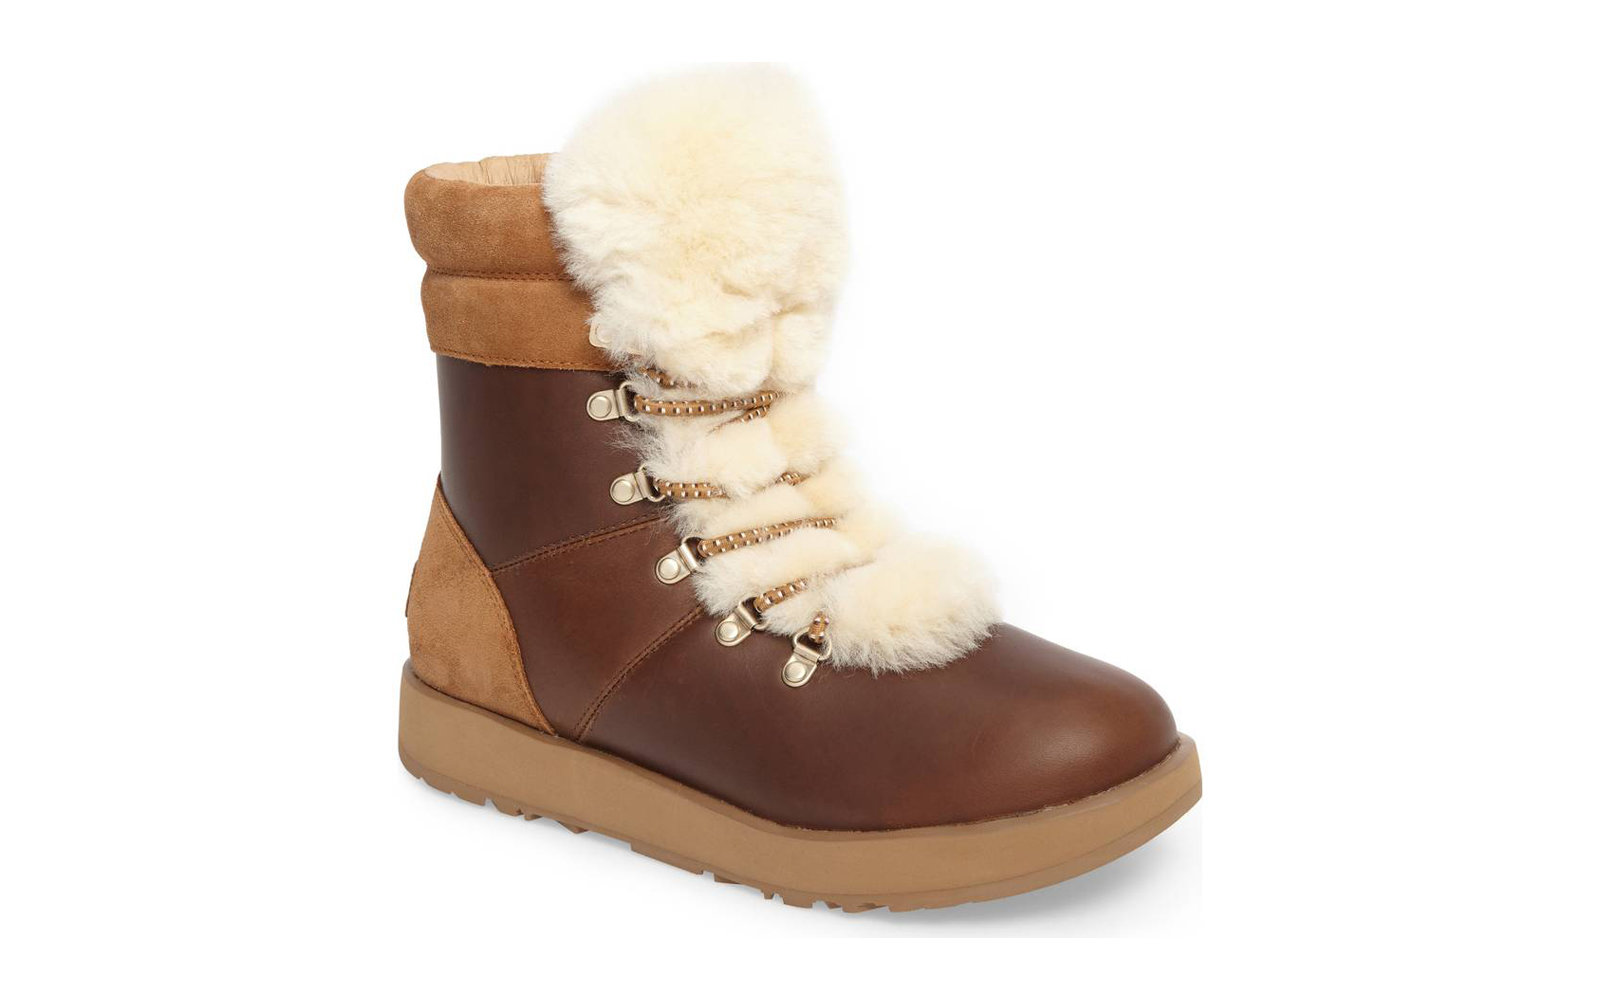 72a4bc1c418 Ugg Viki Waterproof  Best for Arctic Adventures. Ugg Viki Waterproof.  Courtesy of Nordstrom. Road-tested in Canada at the height of winter ...